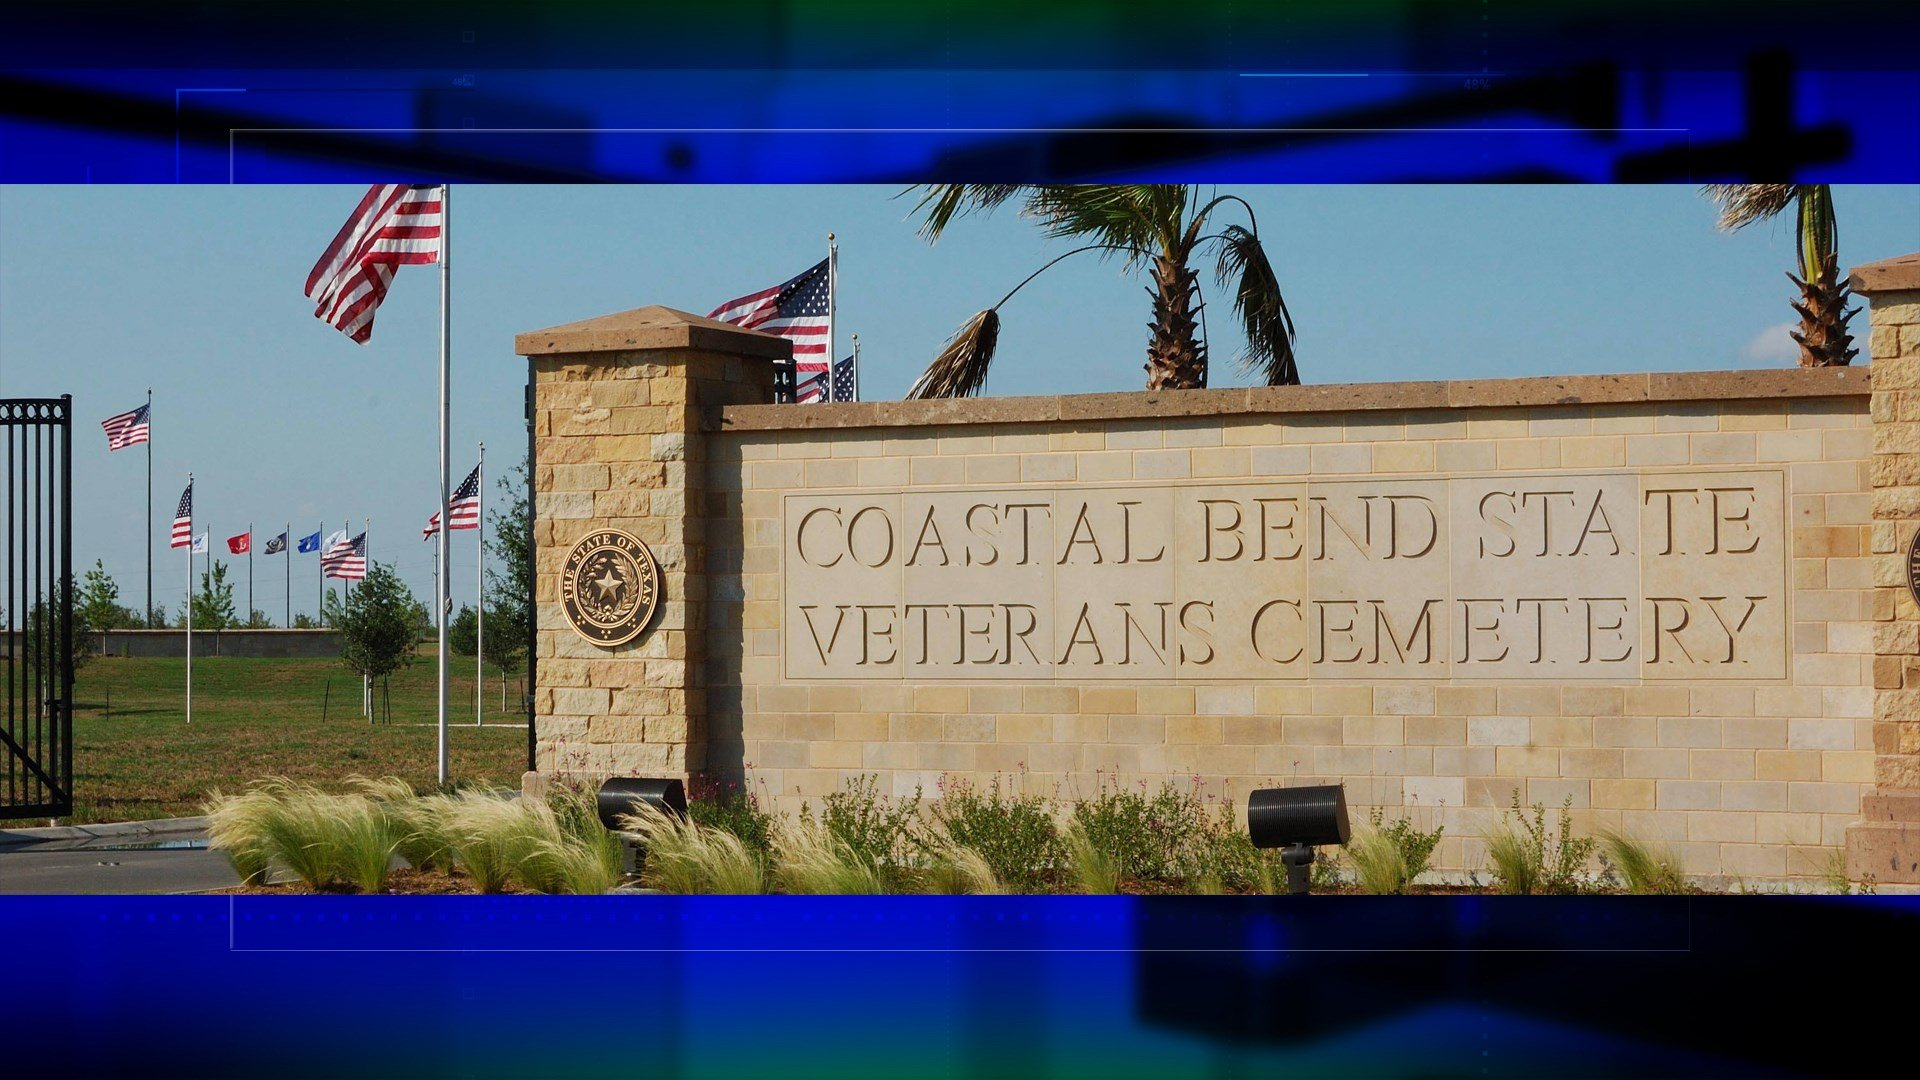 photo from Facebook/Coastal Bend State Veterans Cemetery